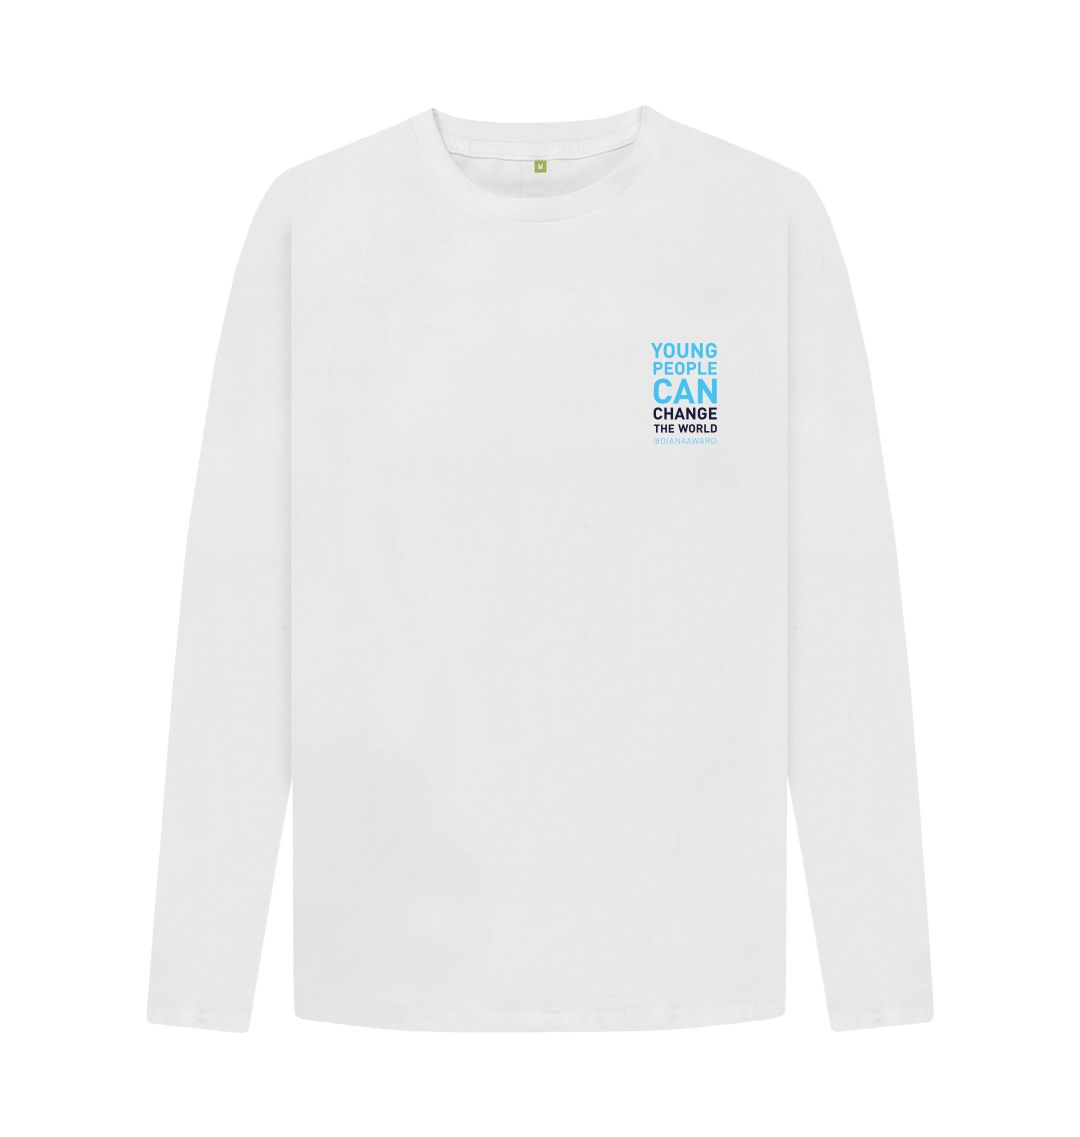 White Change the World Long Sleeve Tee (Unisex)